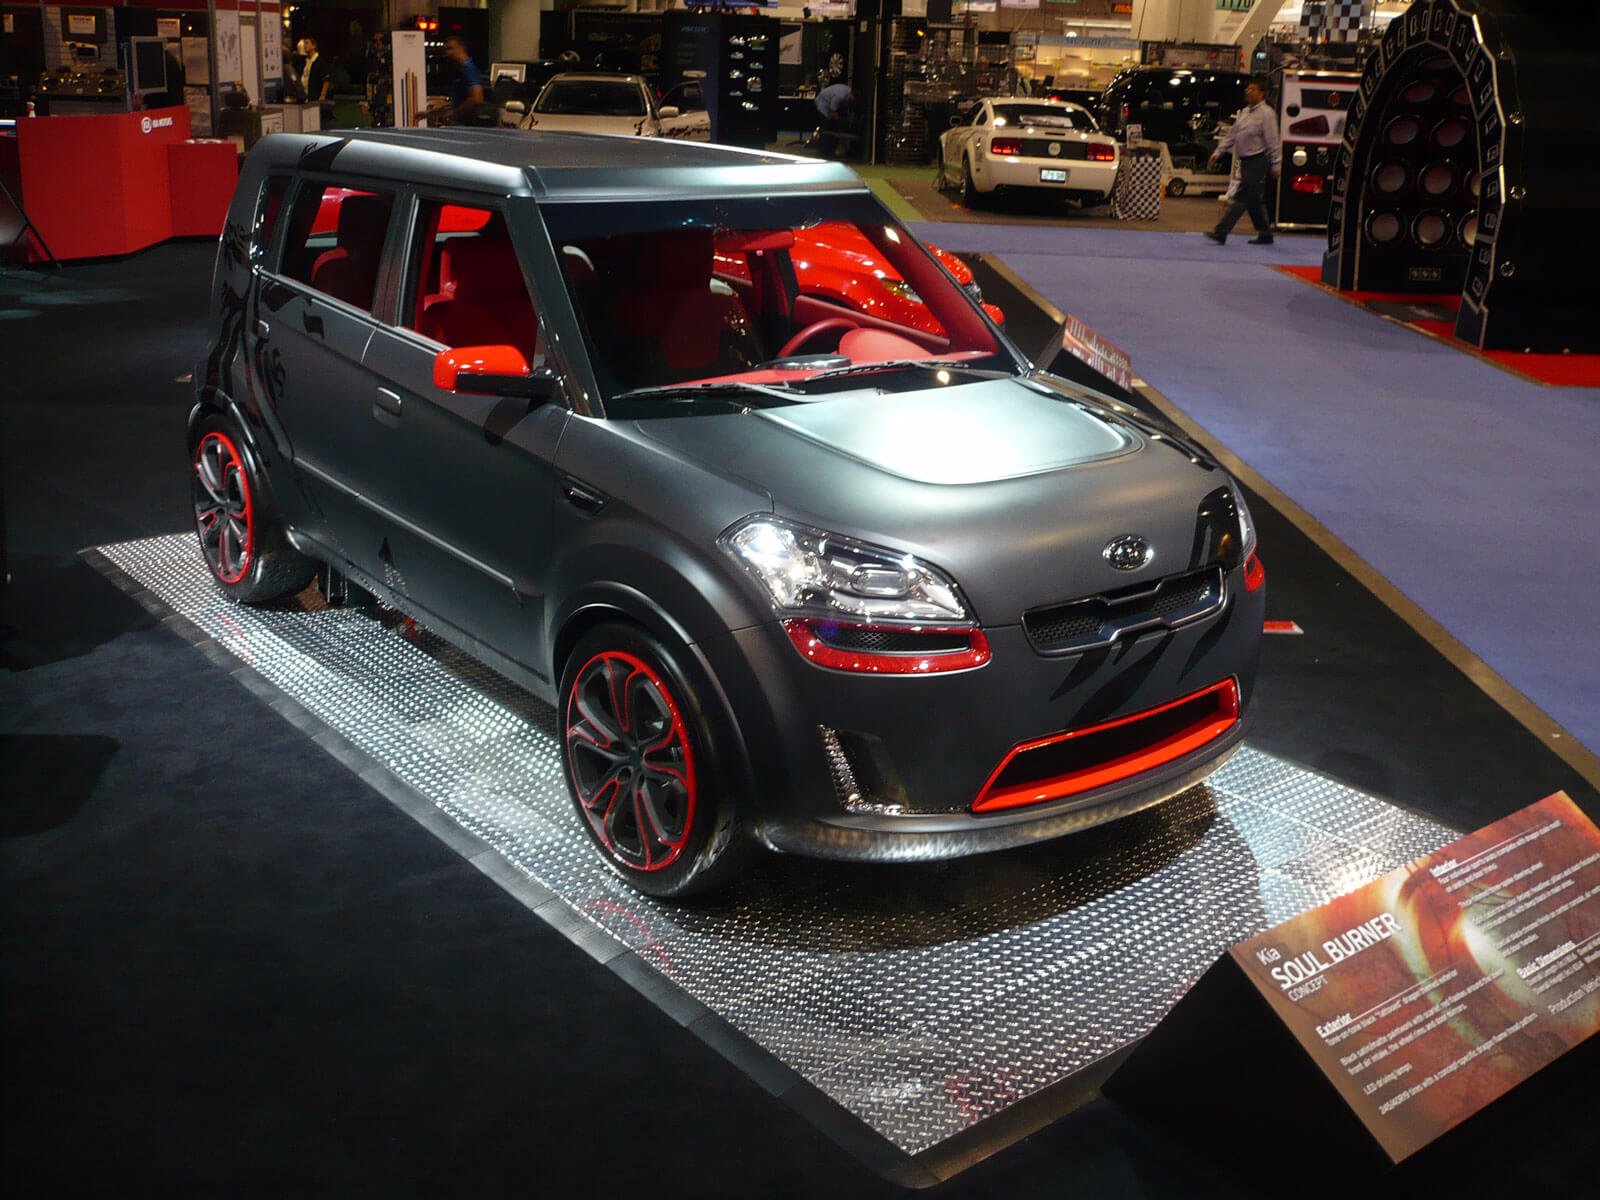 Kia Soul Burner displayed with RaceDeck Pro